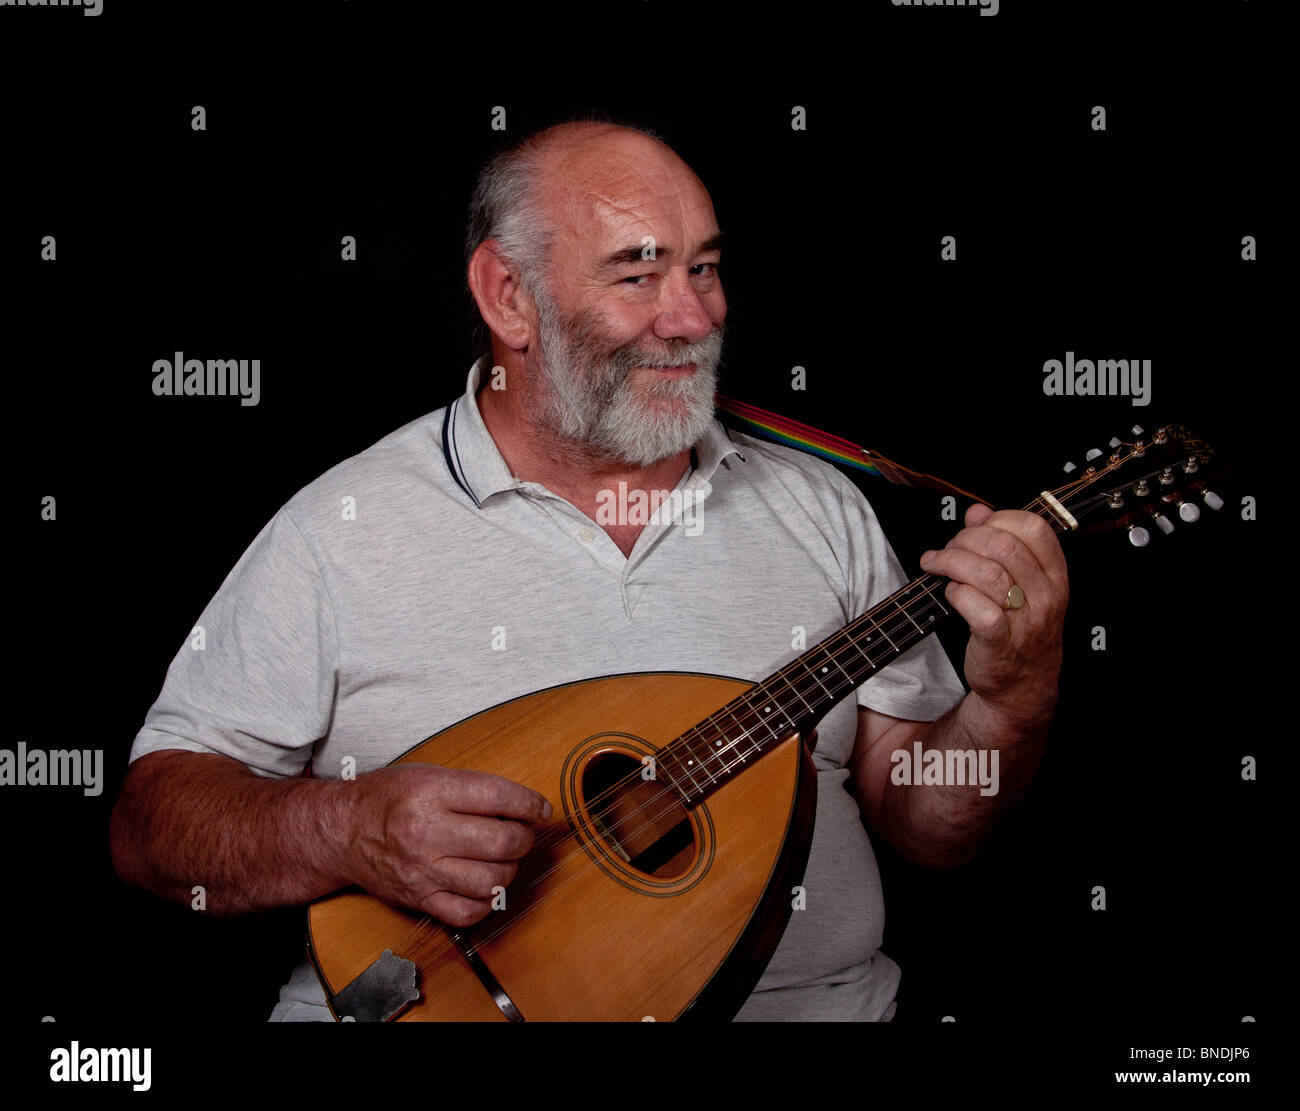 Bearded musician plays octave mandola, smiling - Stock Image